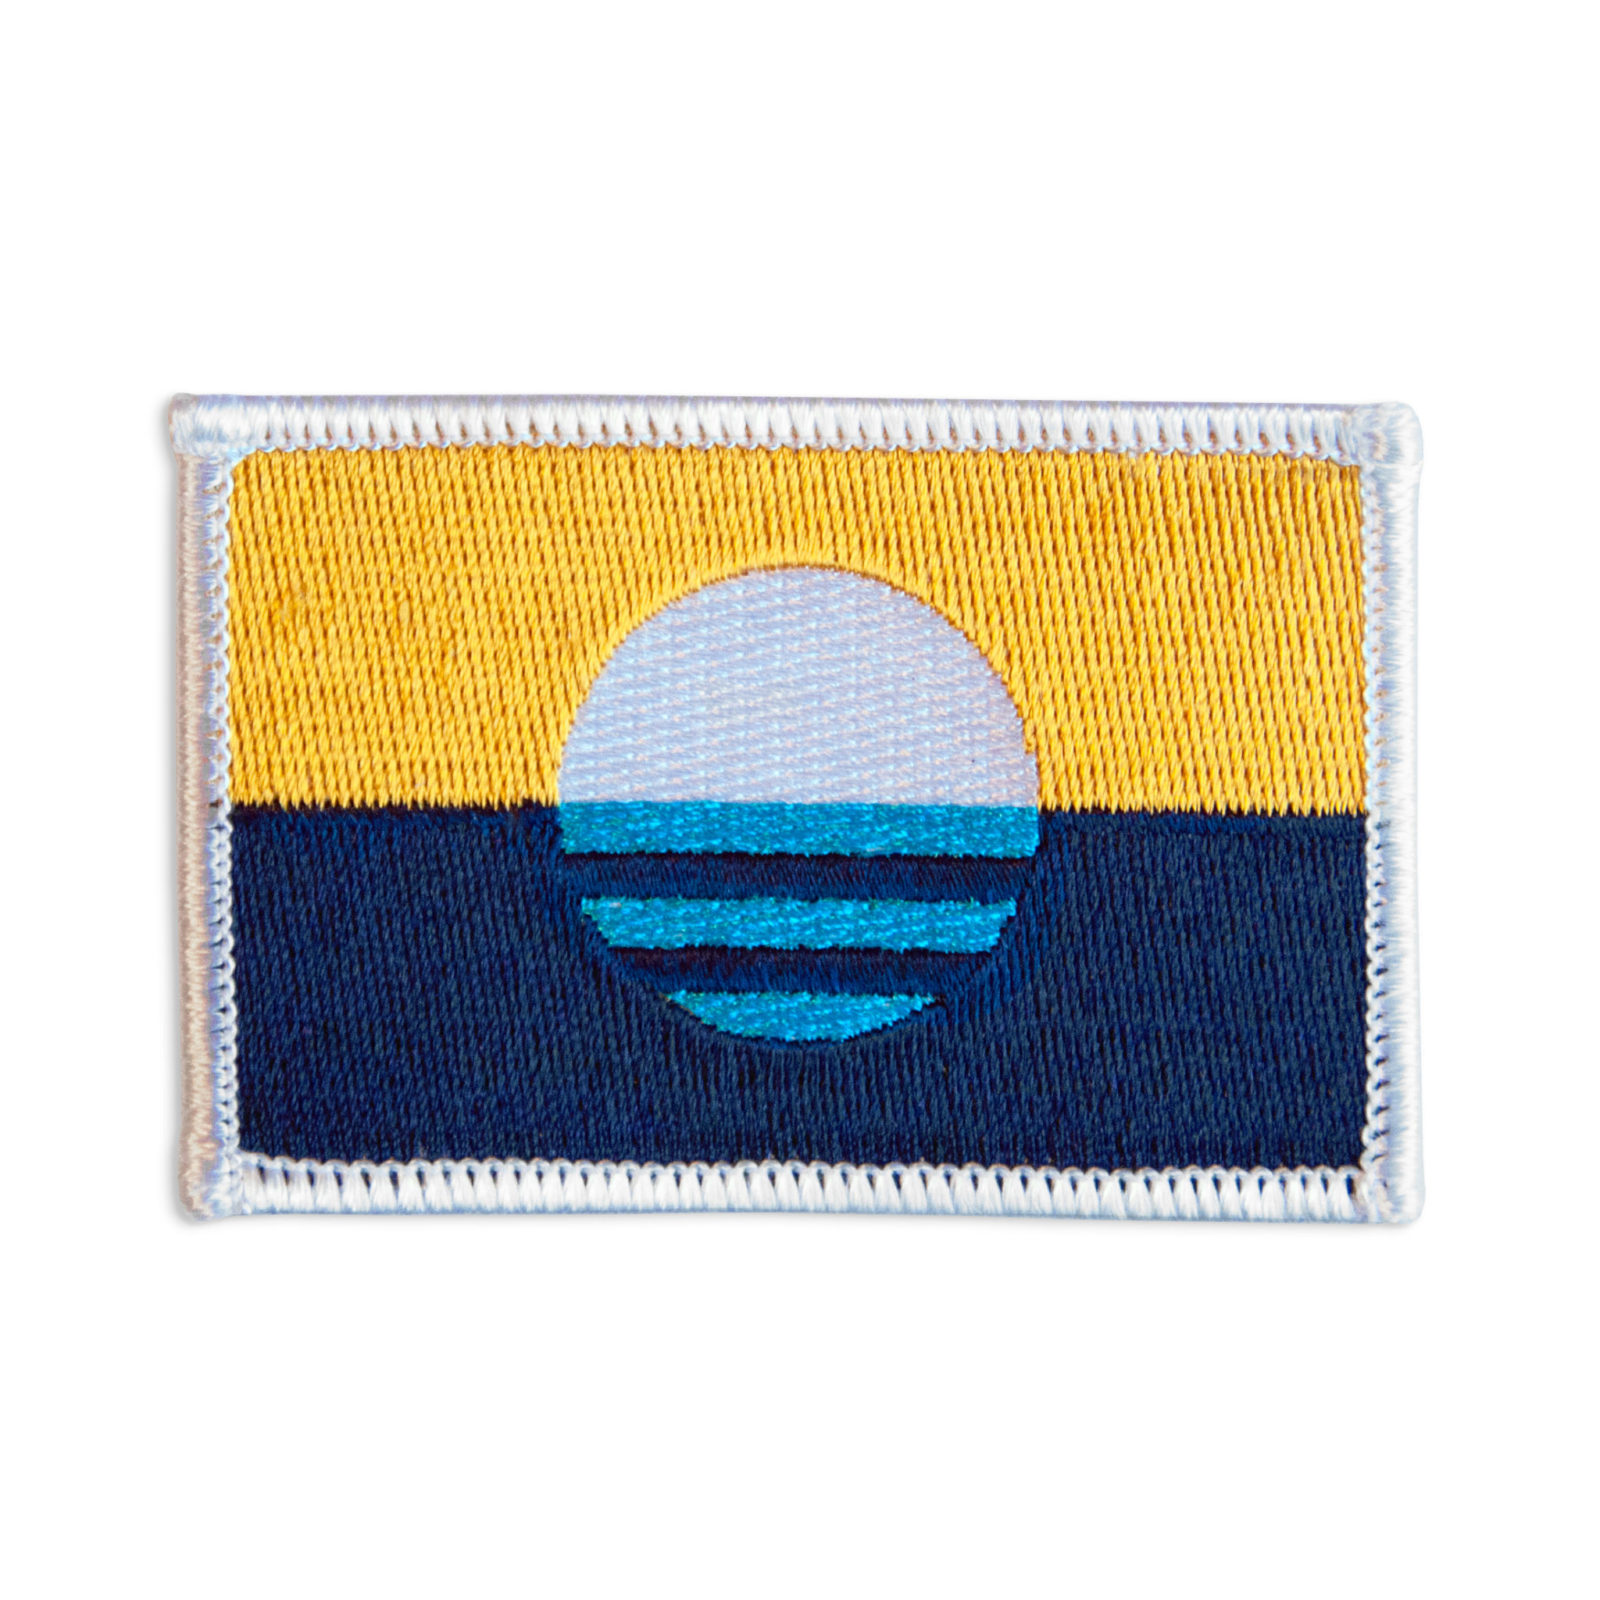 ea40b221ac8 Milwaukee Flag Embroidered Patch — The People s Flag of Milwaukee